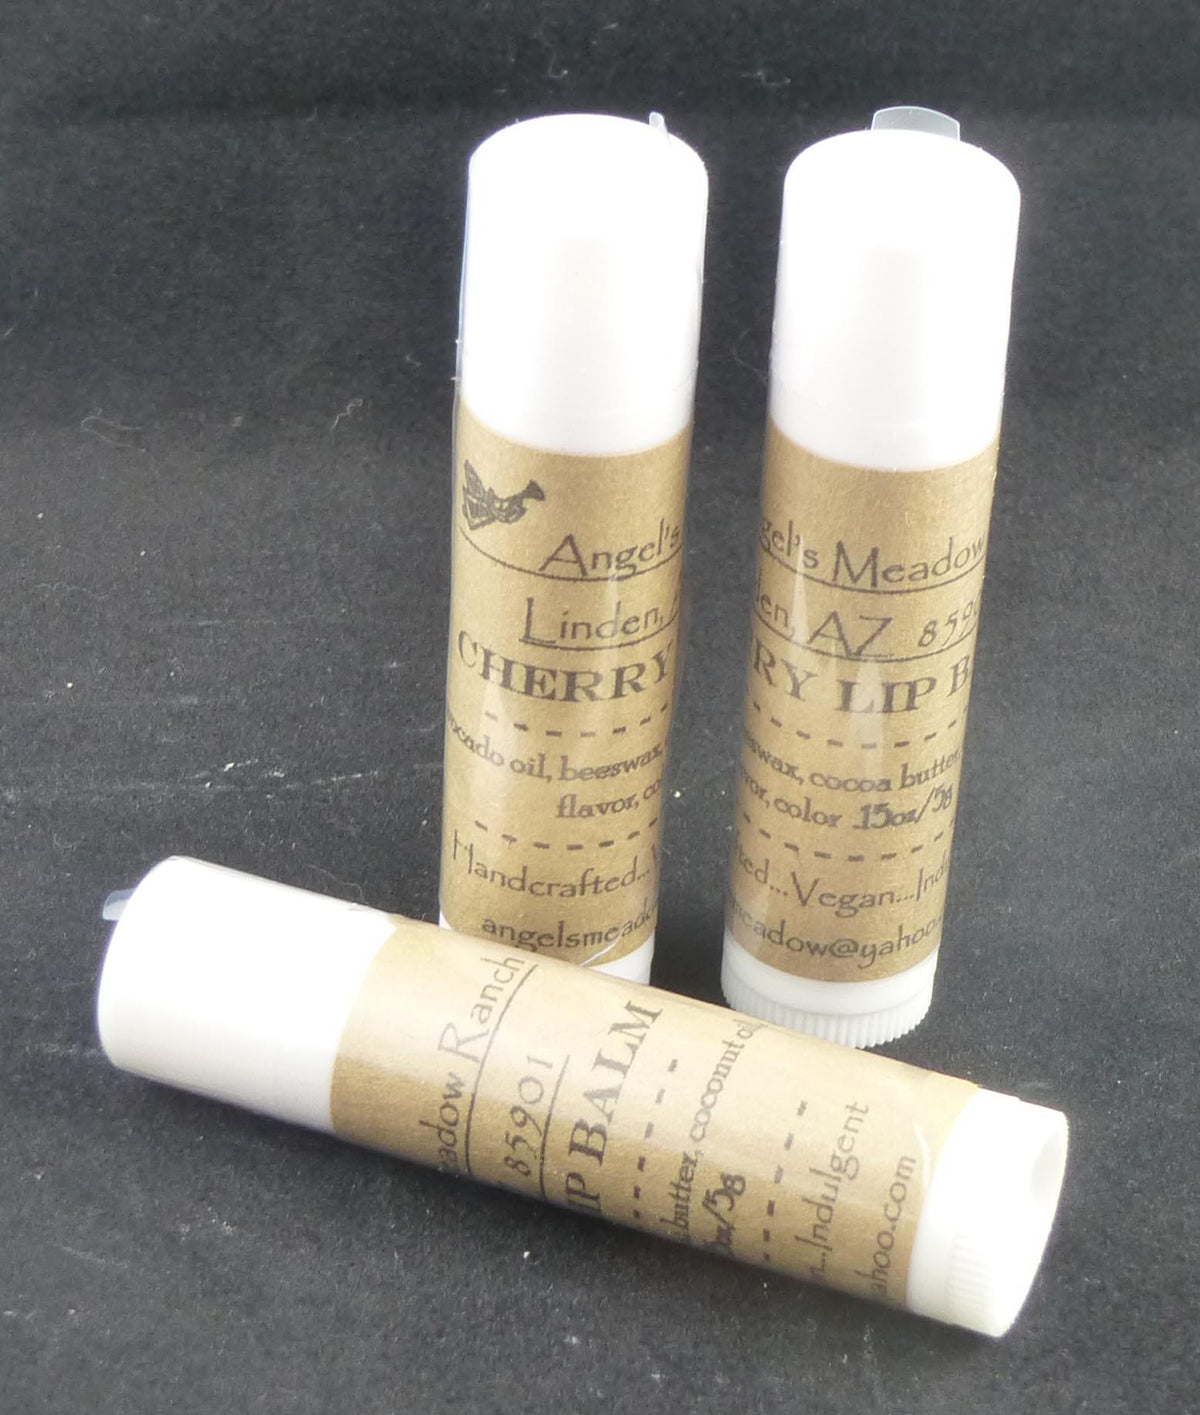 [Chocolate_Orange_Truffle_Lip_Balm_Stick]- Angel's Meadow Ranch